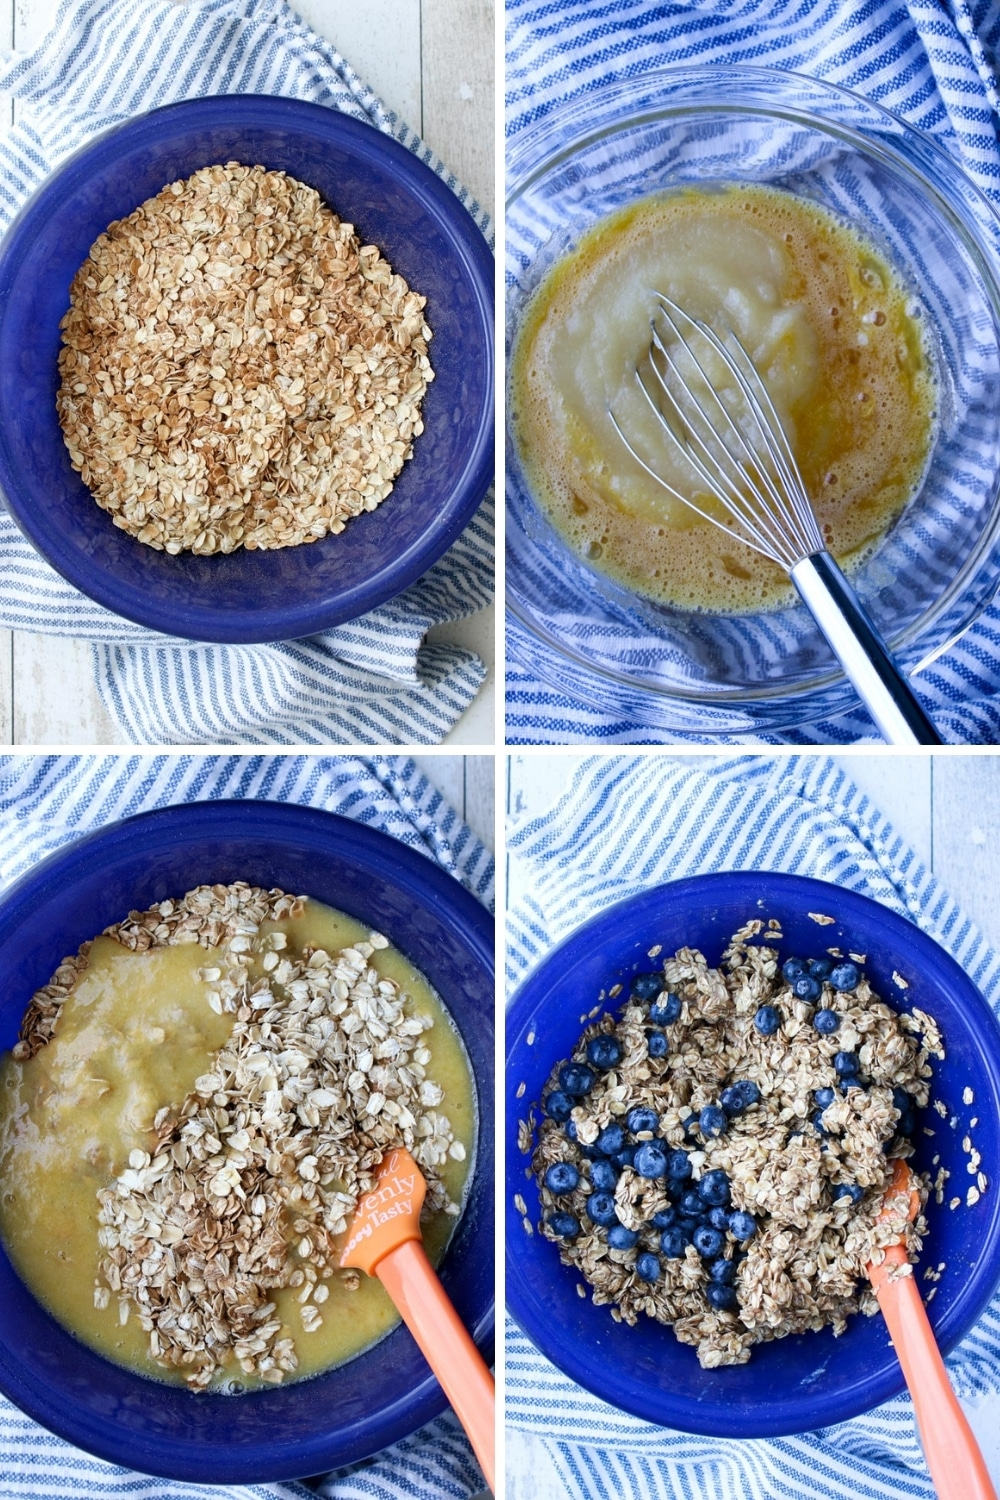 collage showing how to make blueberry baked oatmeal